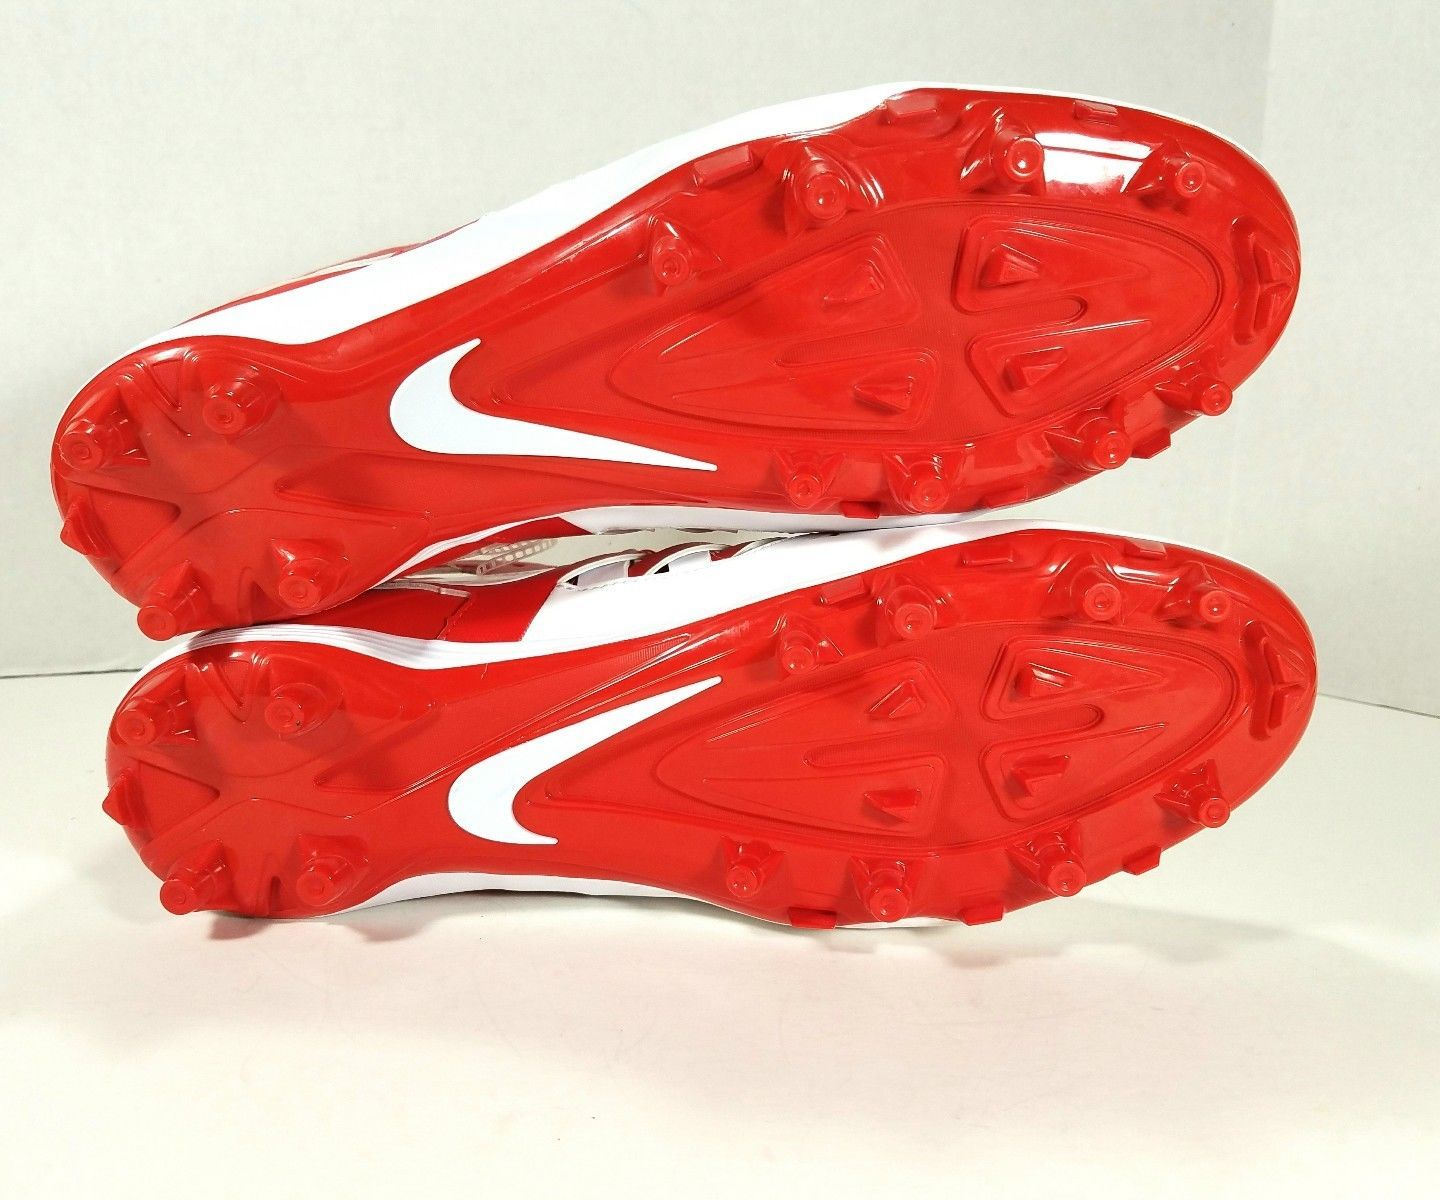 online store 03392 a621d Nike Huarache V 5 LAX Mid Lacrosse Cleats Men s Size 12 Red   White 807142-